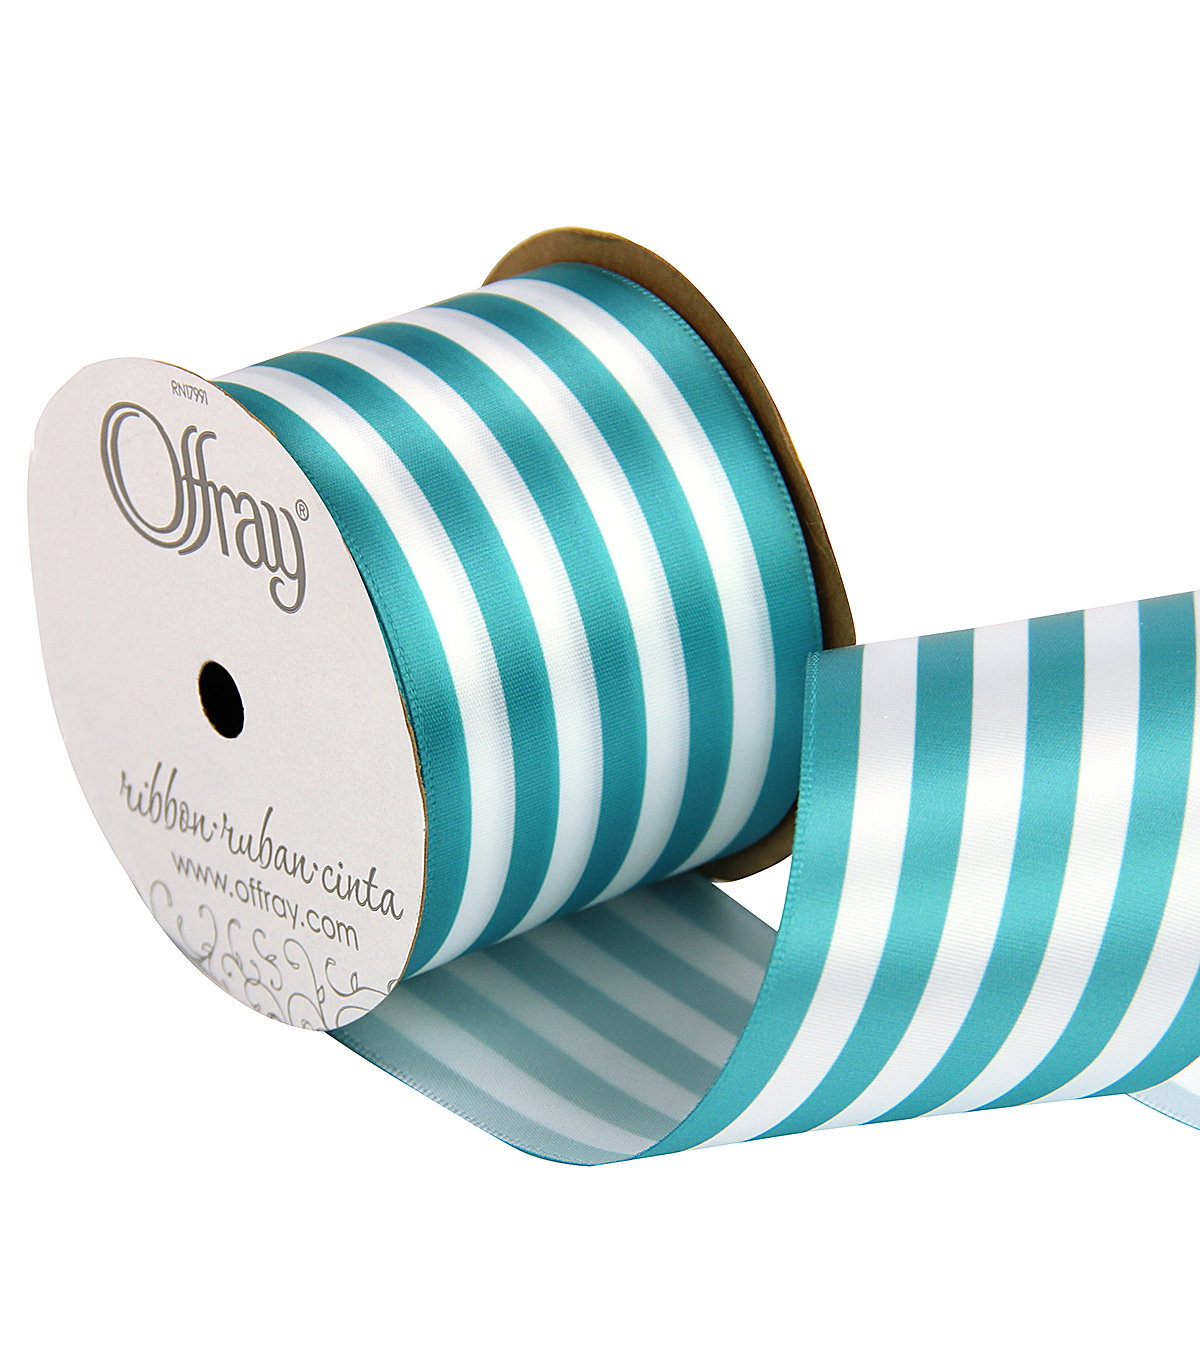 2 And One Qtr Island Blues Stripe Ribbon